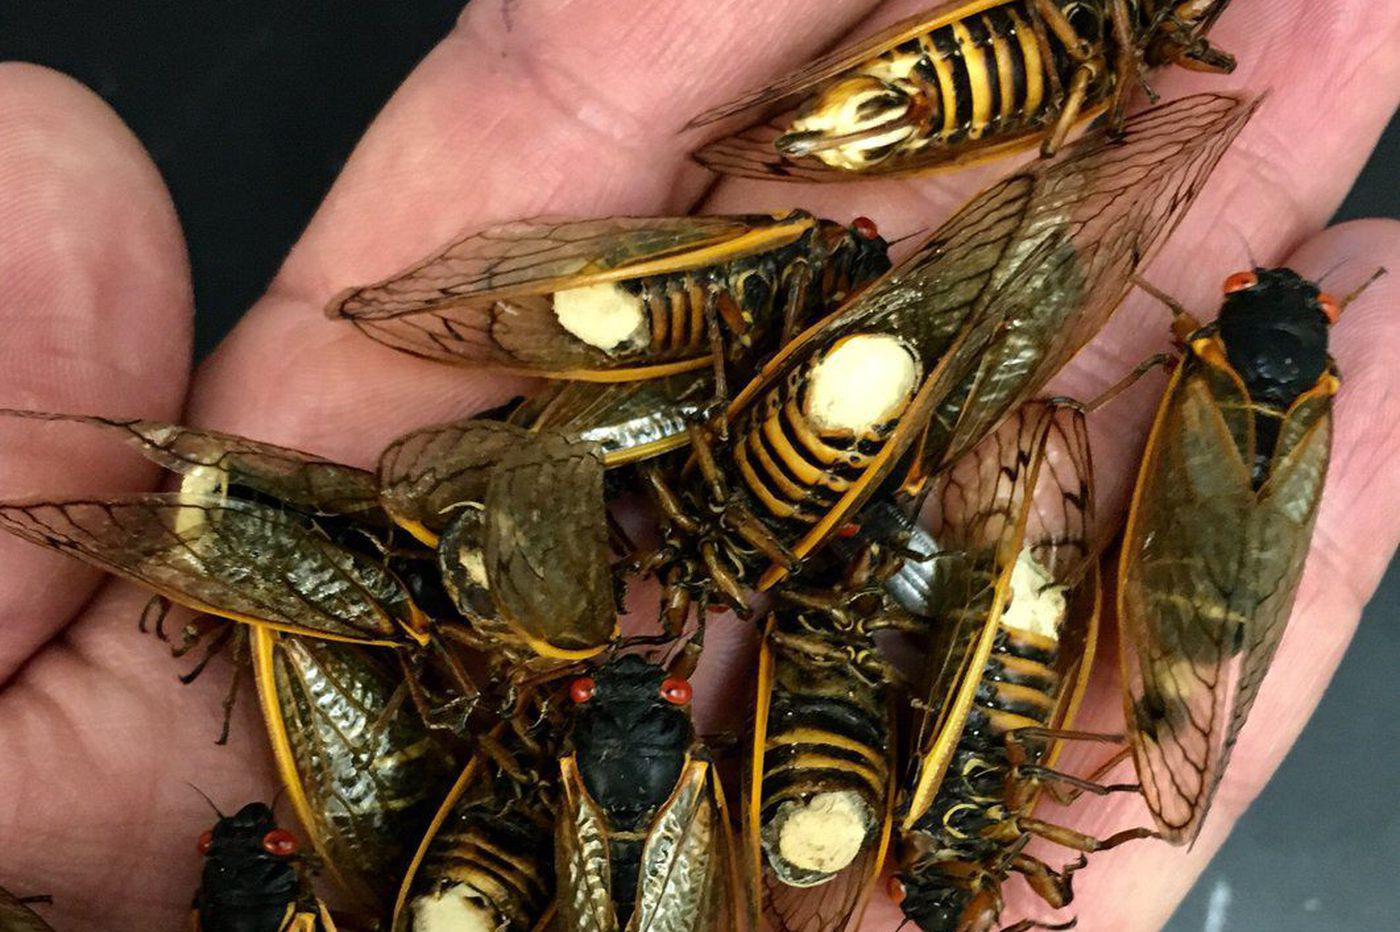 'Zombie' cicadas, under the influence of a fungus, are mating until death